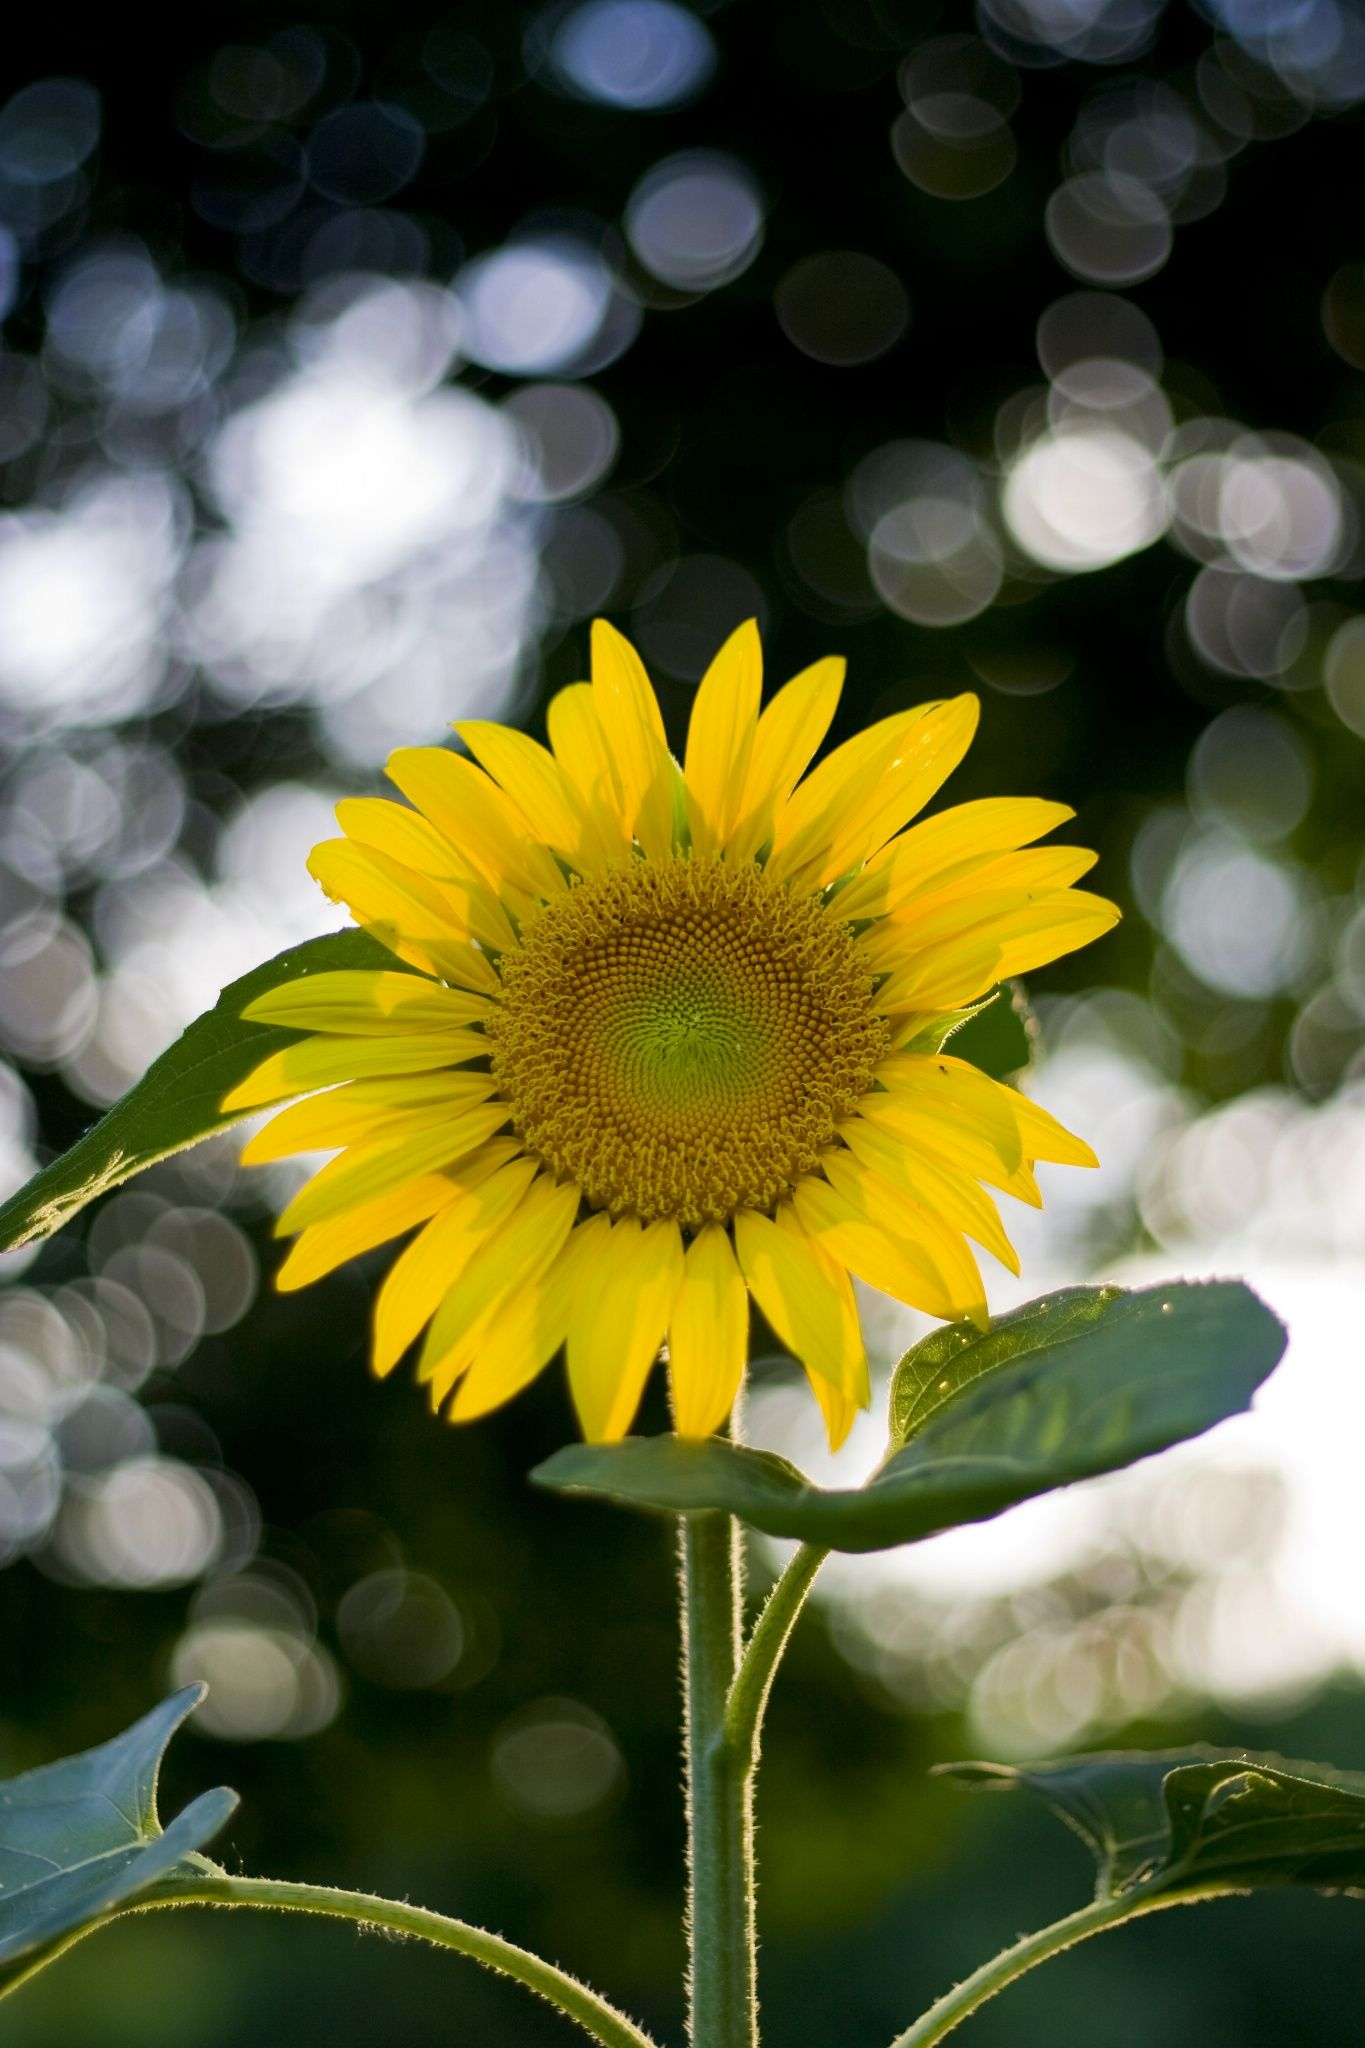 Sunflower by winslow photography on 500px the most beautiful beautiful flowers izmirmasajfo